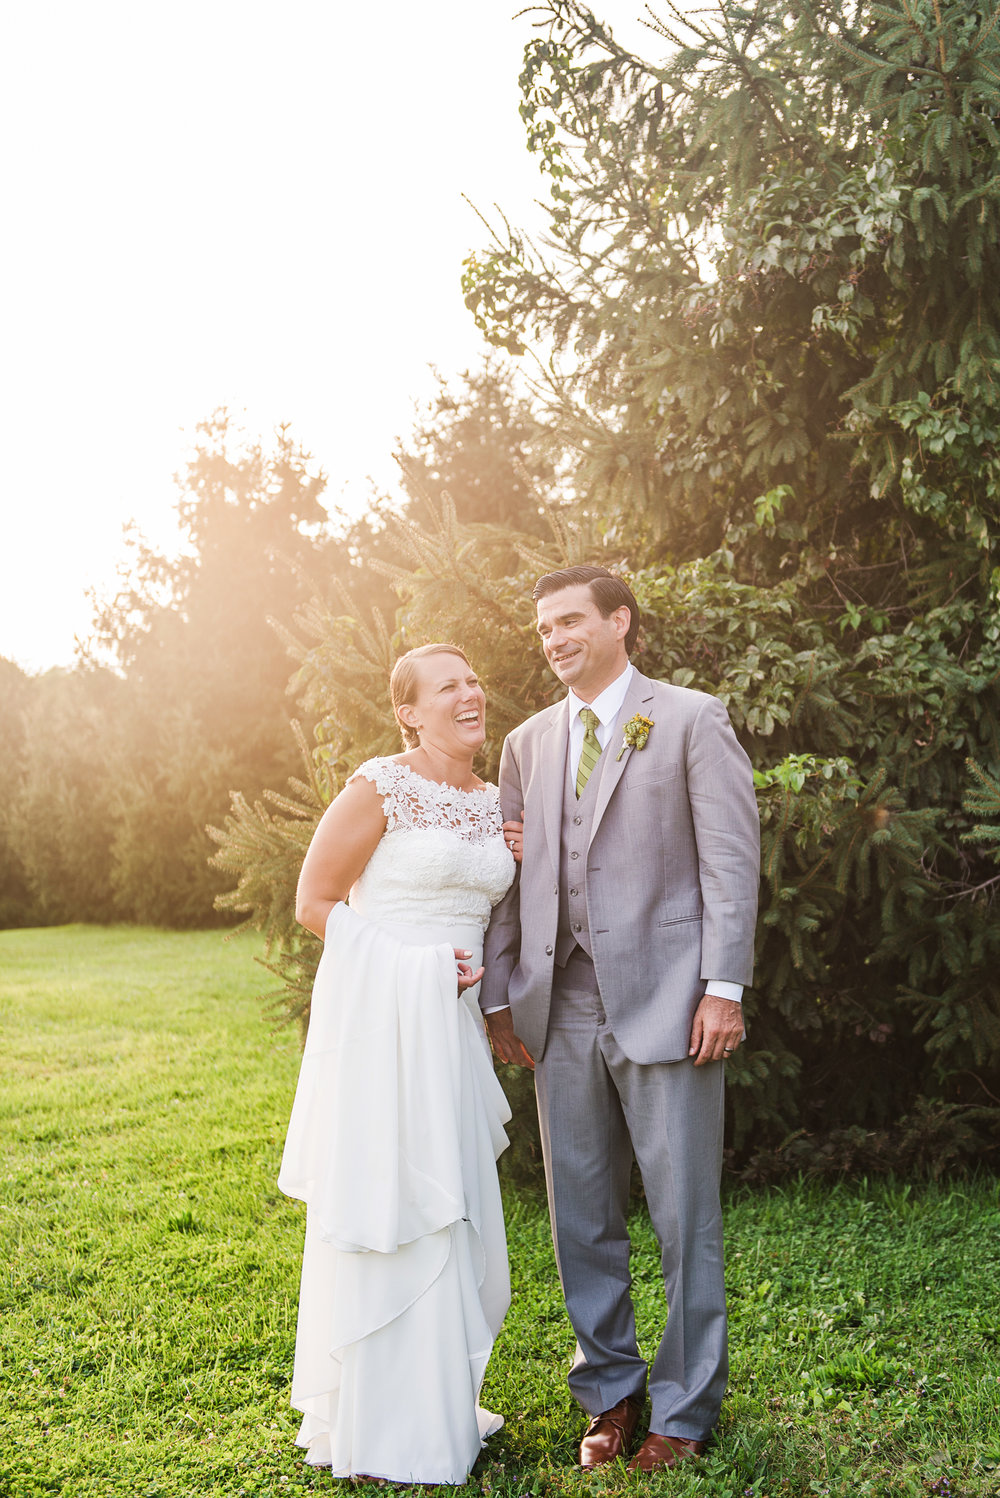 Climbing_Bines_Finger_Lakes_Wedding_JILL_STUDIO_Rochester_NY_Photographer_184833.jpg